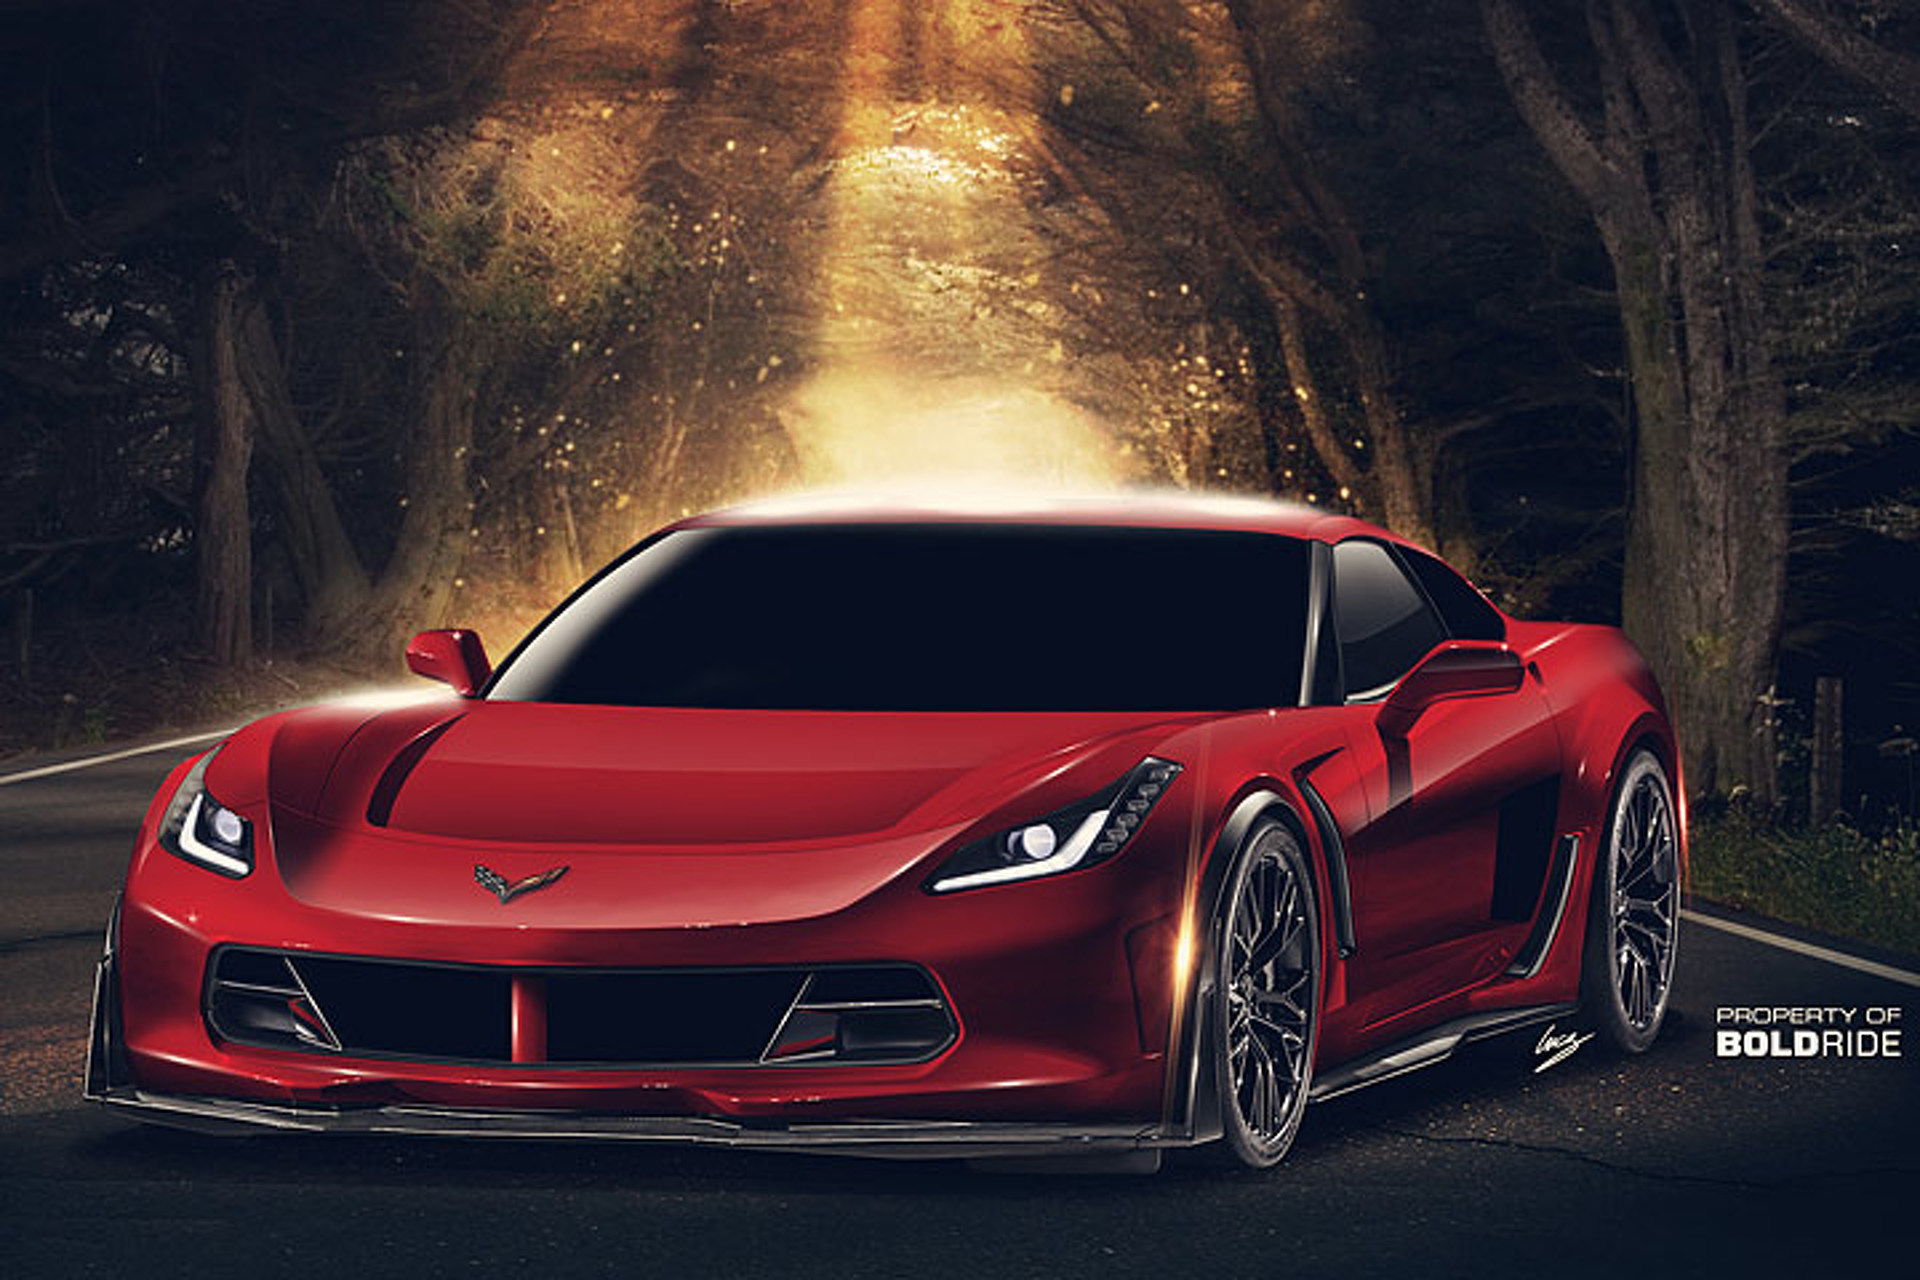 C8 Corvette Release Date >> Report Says Mid-Engine Corvette to Replace C7 in Late 2018